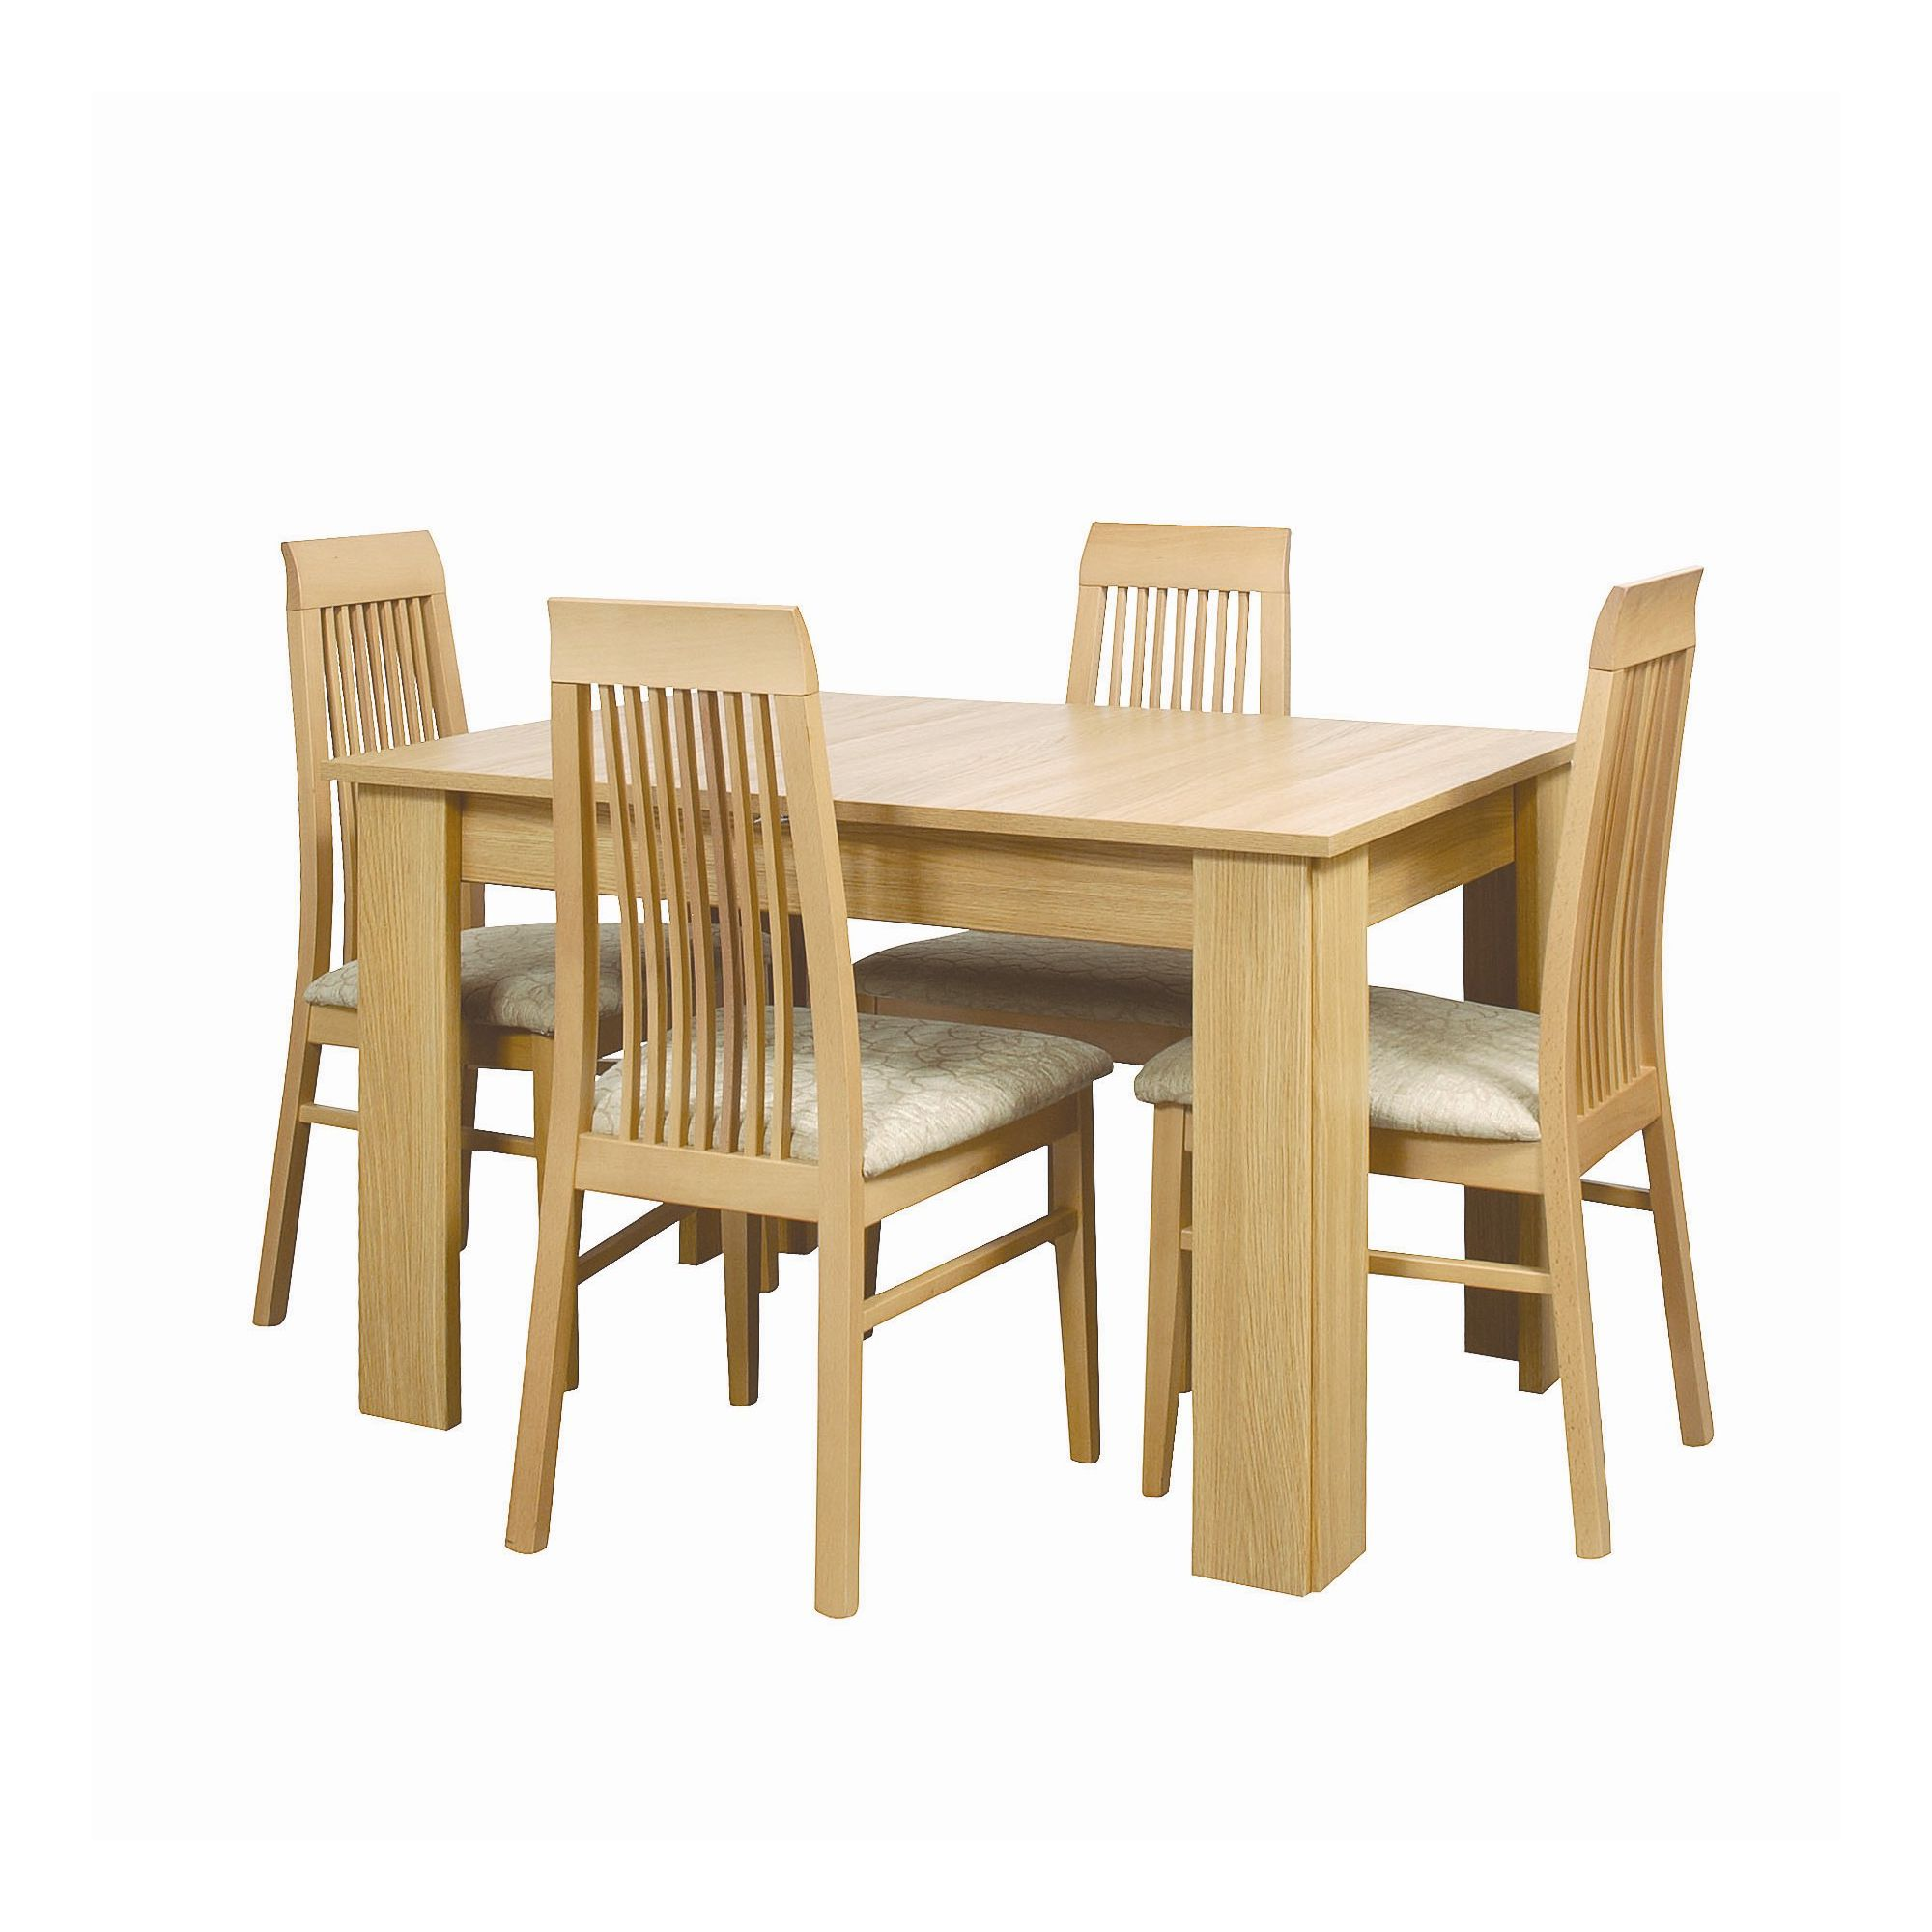 Caxton Huxley Dining Table Set with 4 Slatted Back Dining Chairs in Light Oak at Tesco Direct